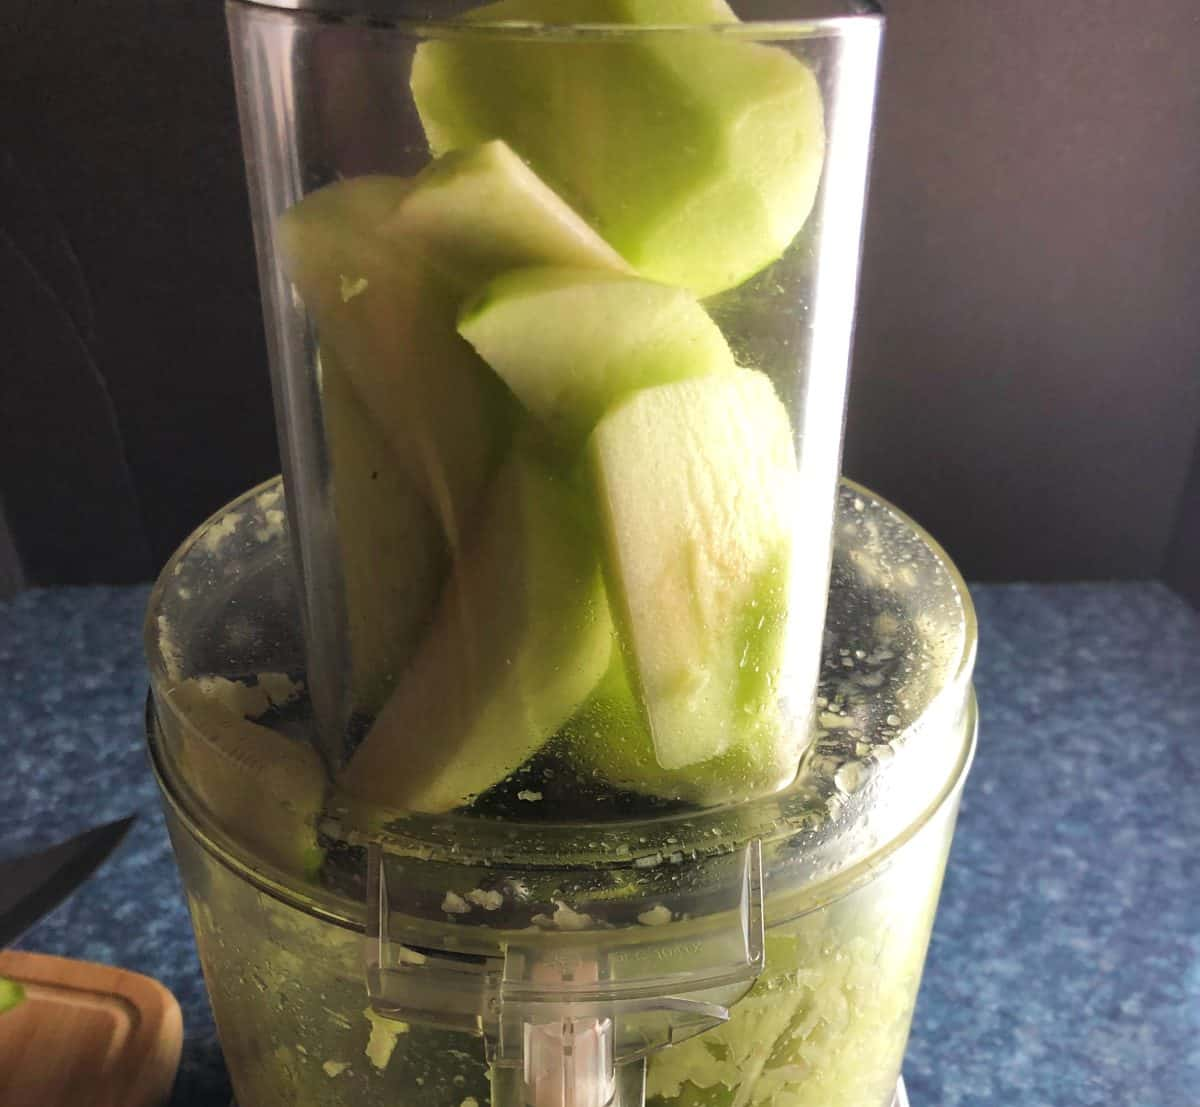 shredding green apples in a food processor